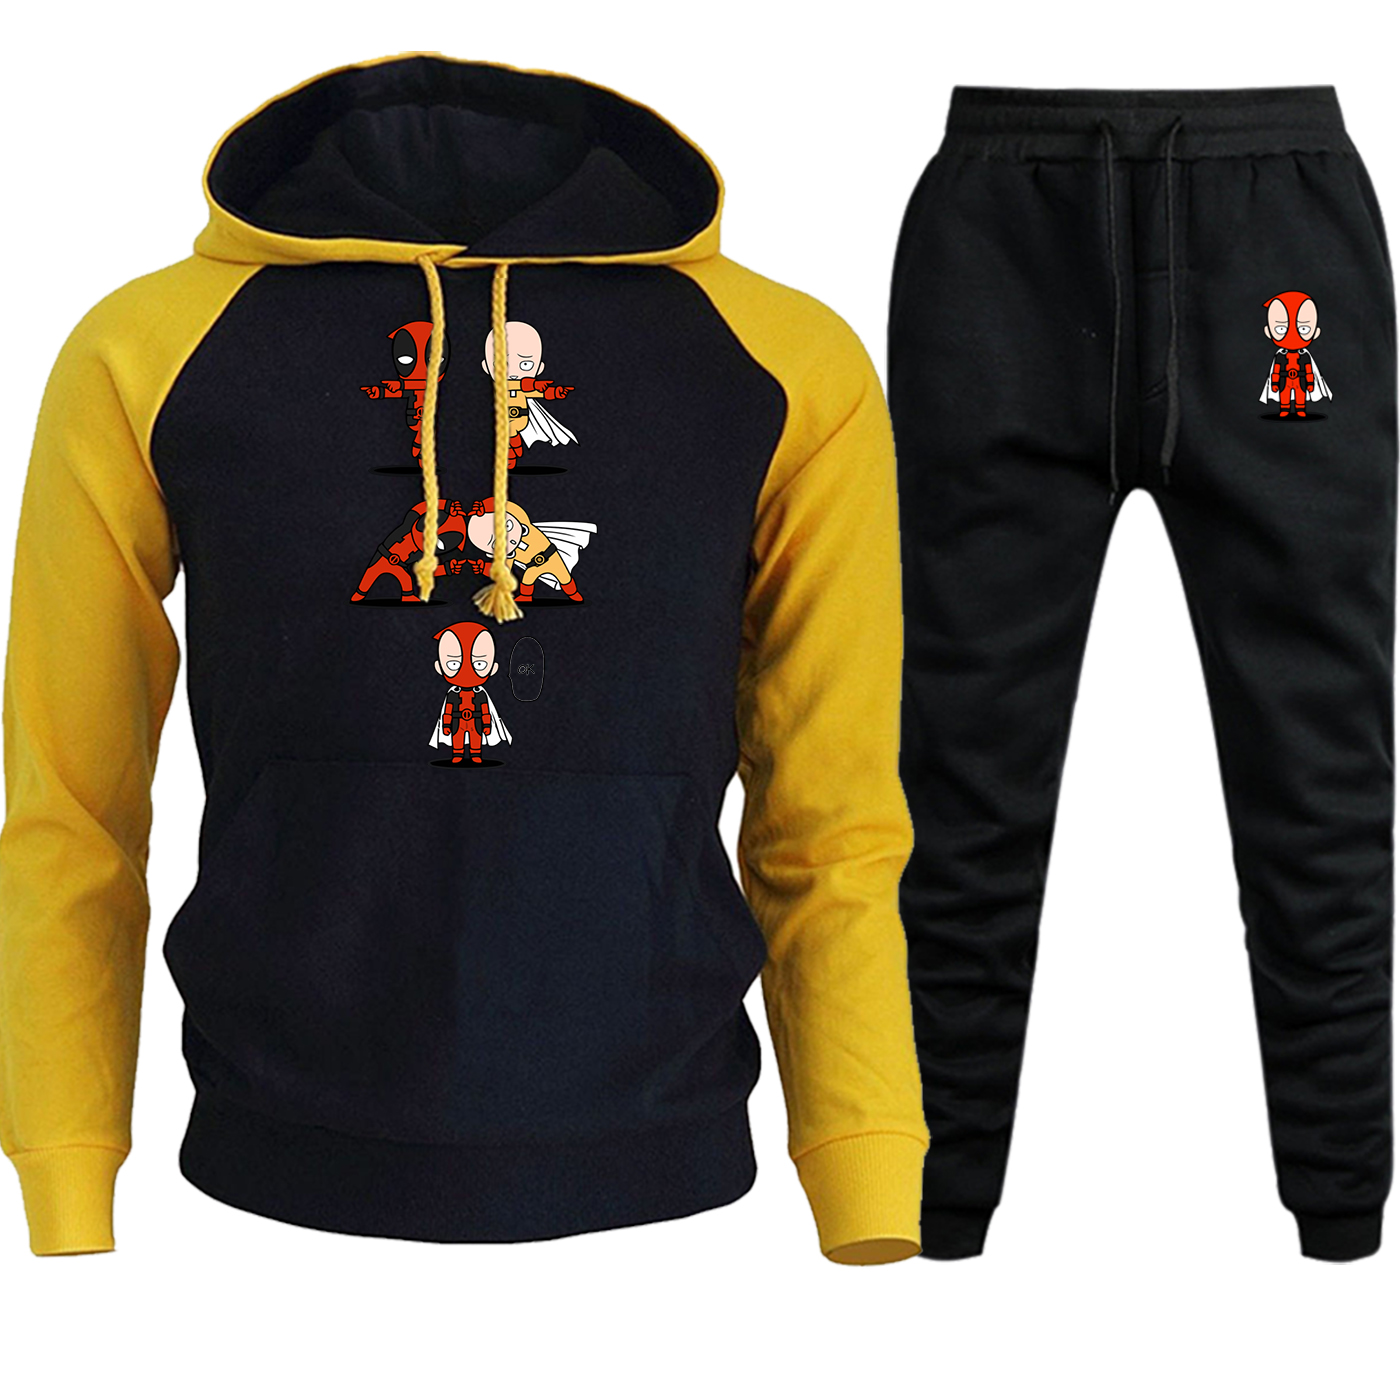 One Punch Man Deadpool Streetwear Men Hoodies Raglan Autumn Winter 2019 Casual Fleece Hooded Suit Pullover+Pants 2 Piece Set